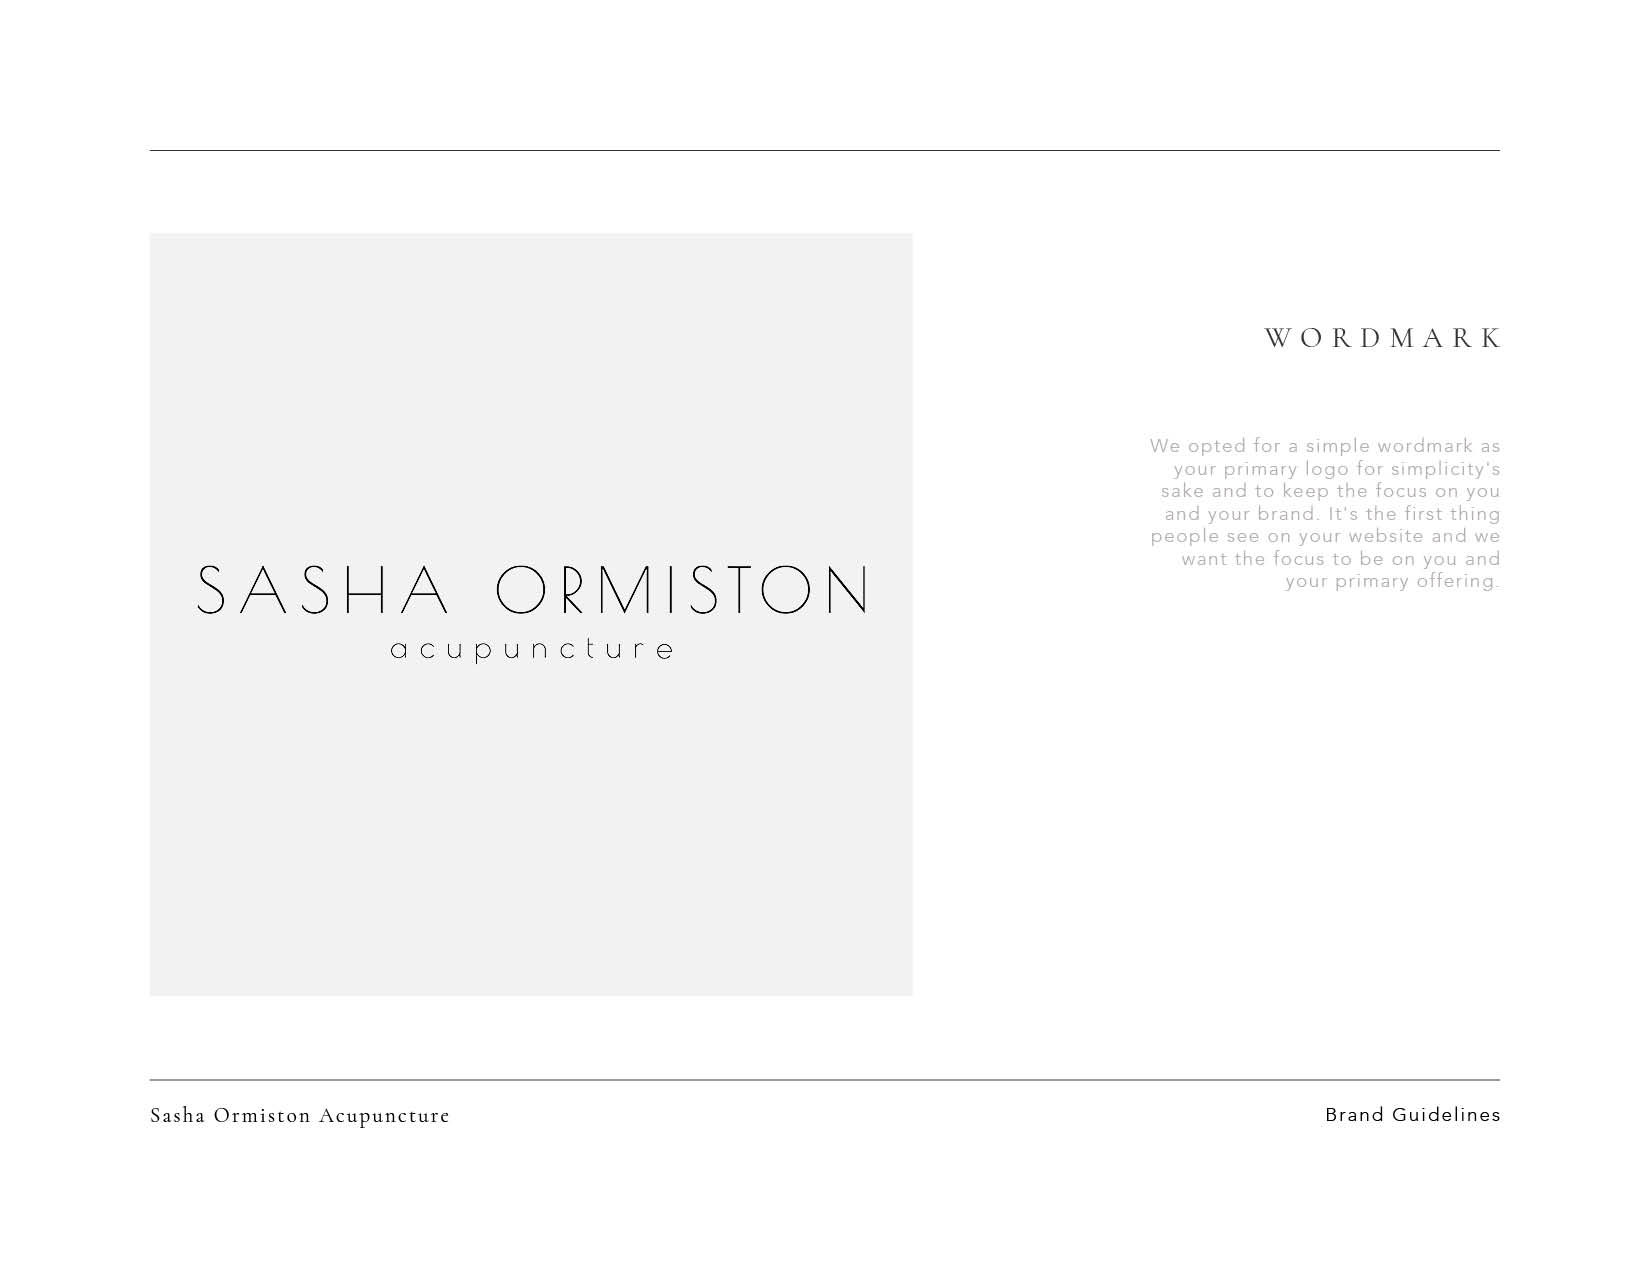 sasha-ormiston-acupuncture_brand-guidelines.jpg